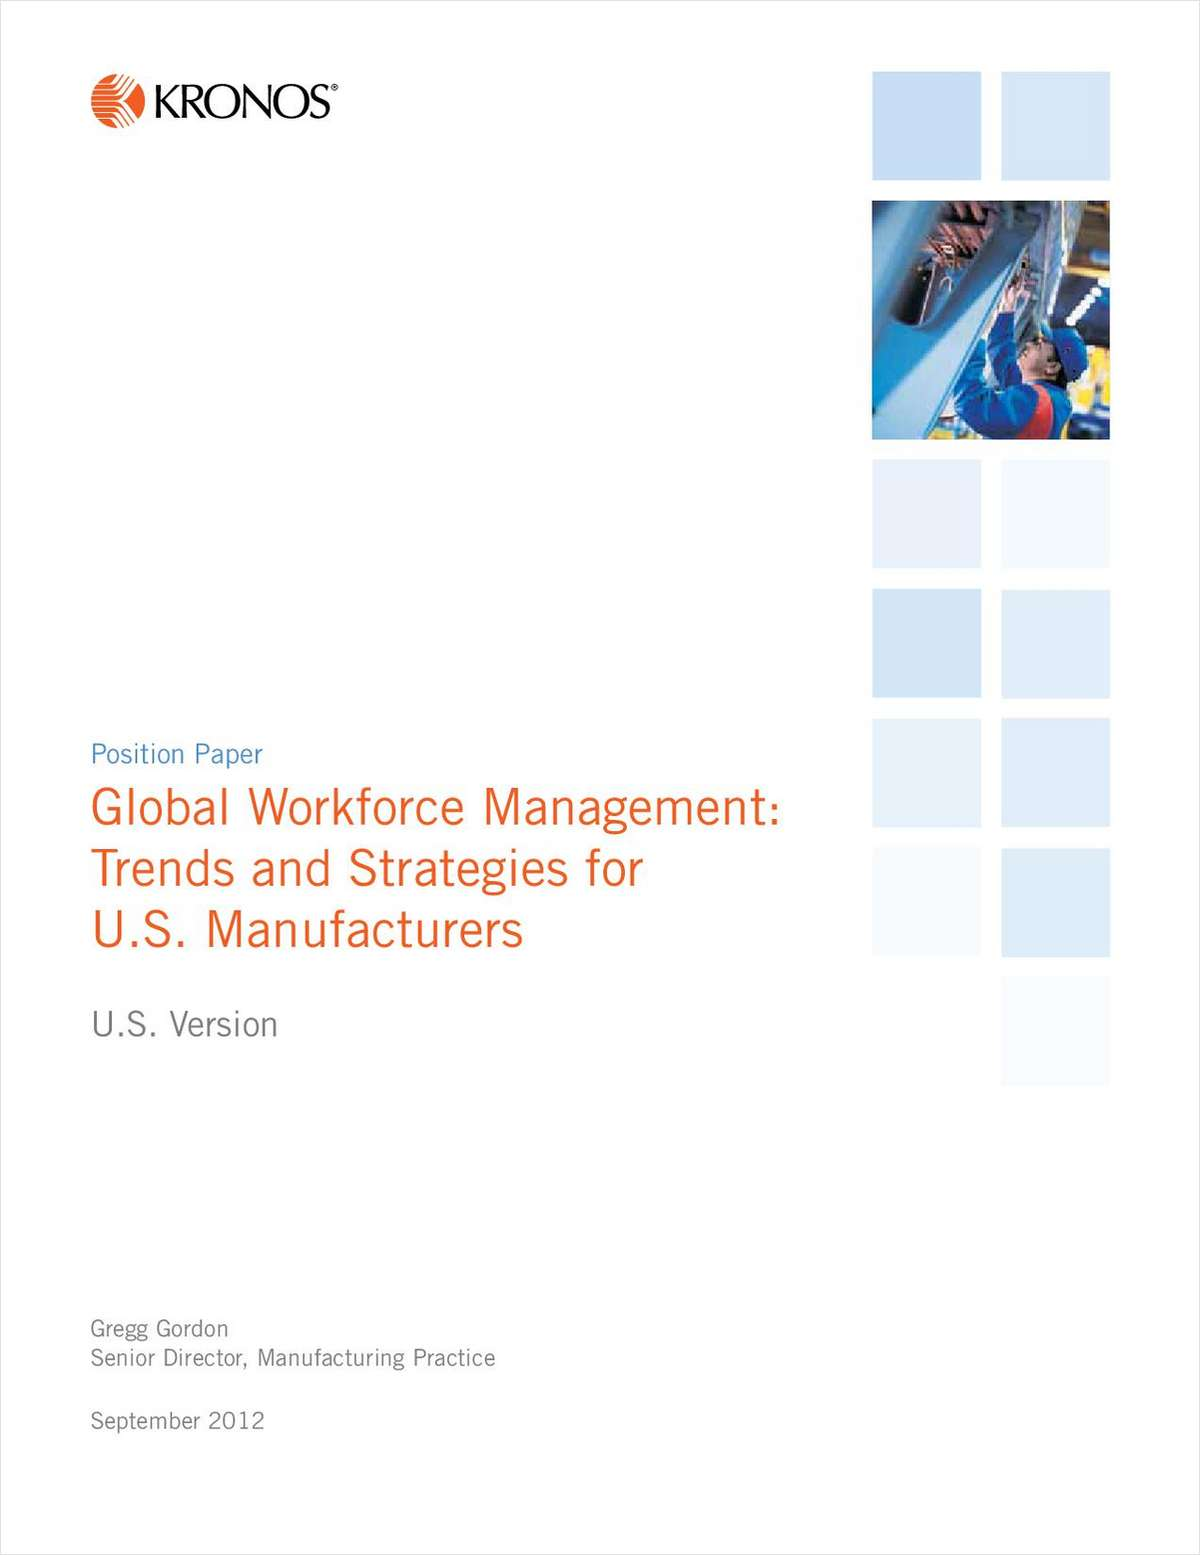 Global Workforce Management: Trends and Strategies for US Manufacturers